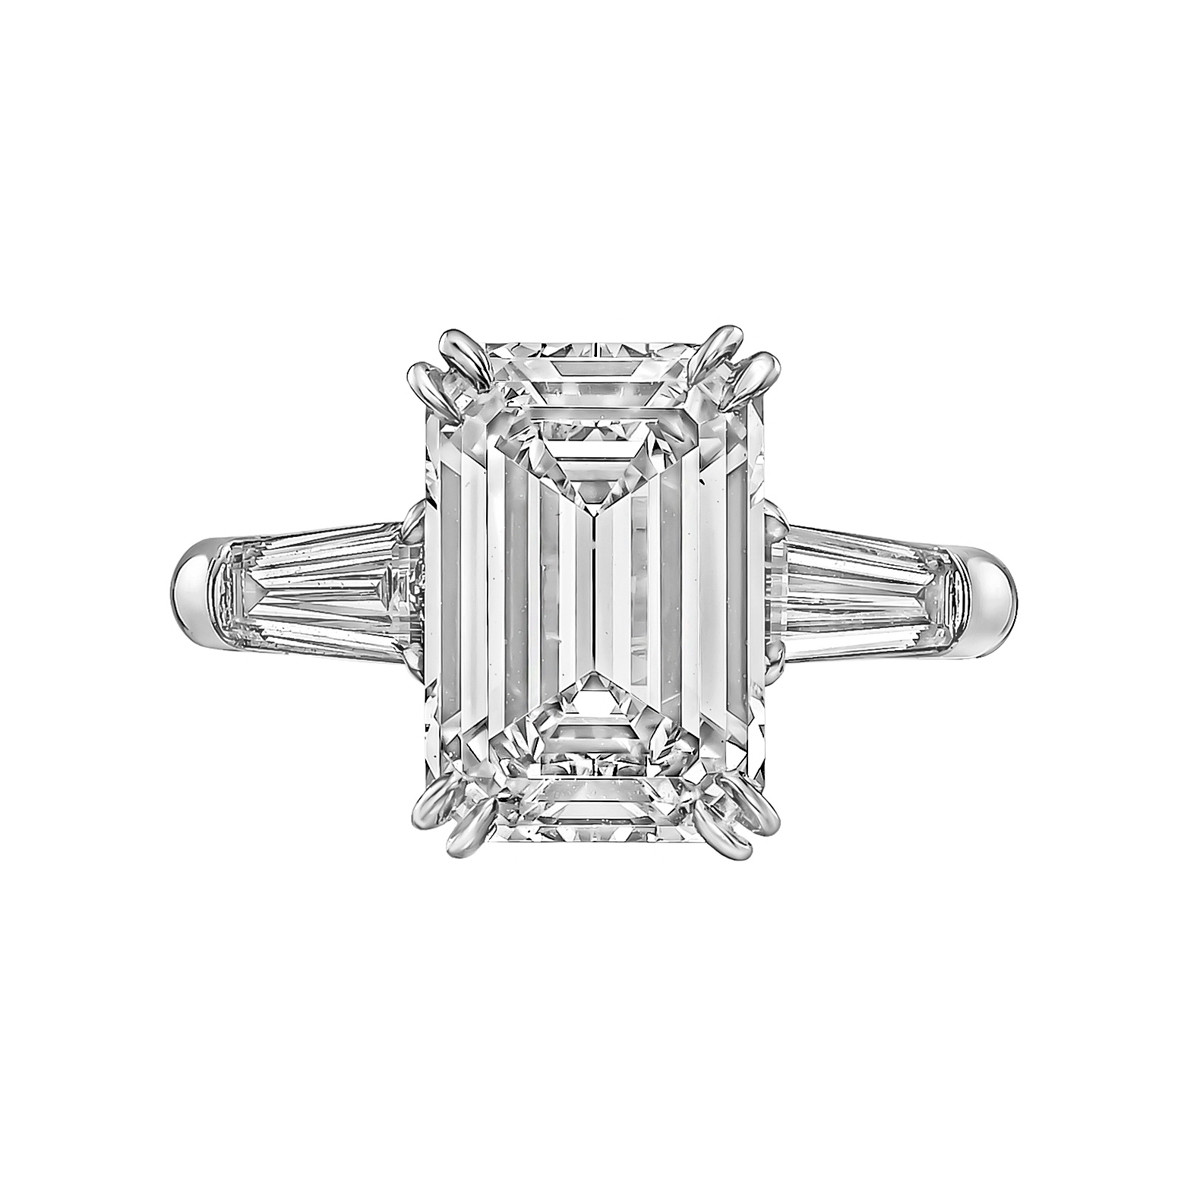 4.17ct Emerald-Cut Diamond Ring (G/VVS1)